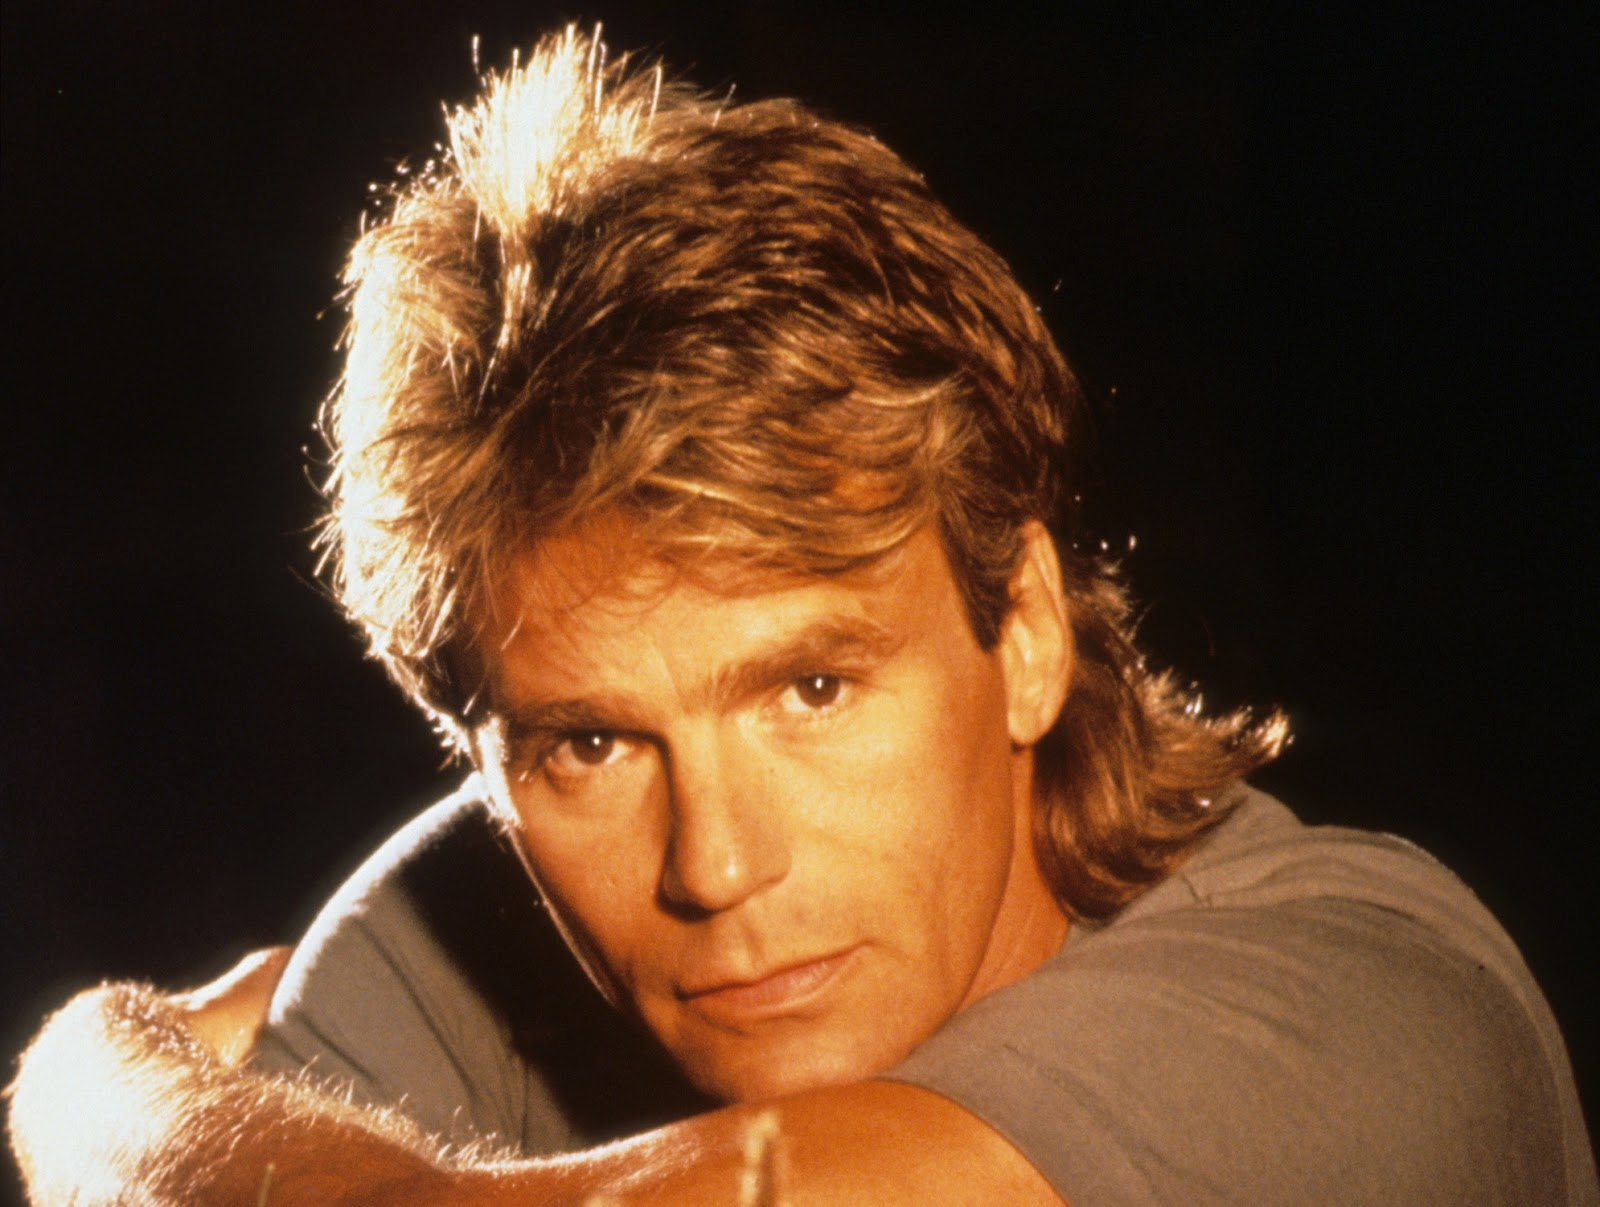 MacGyver Mullet